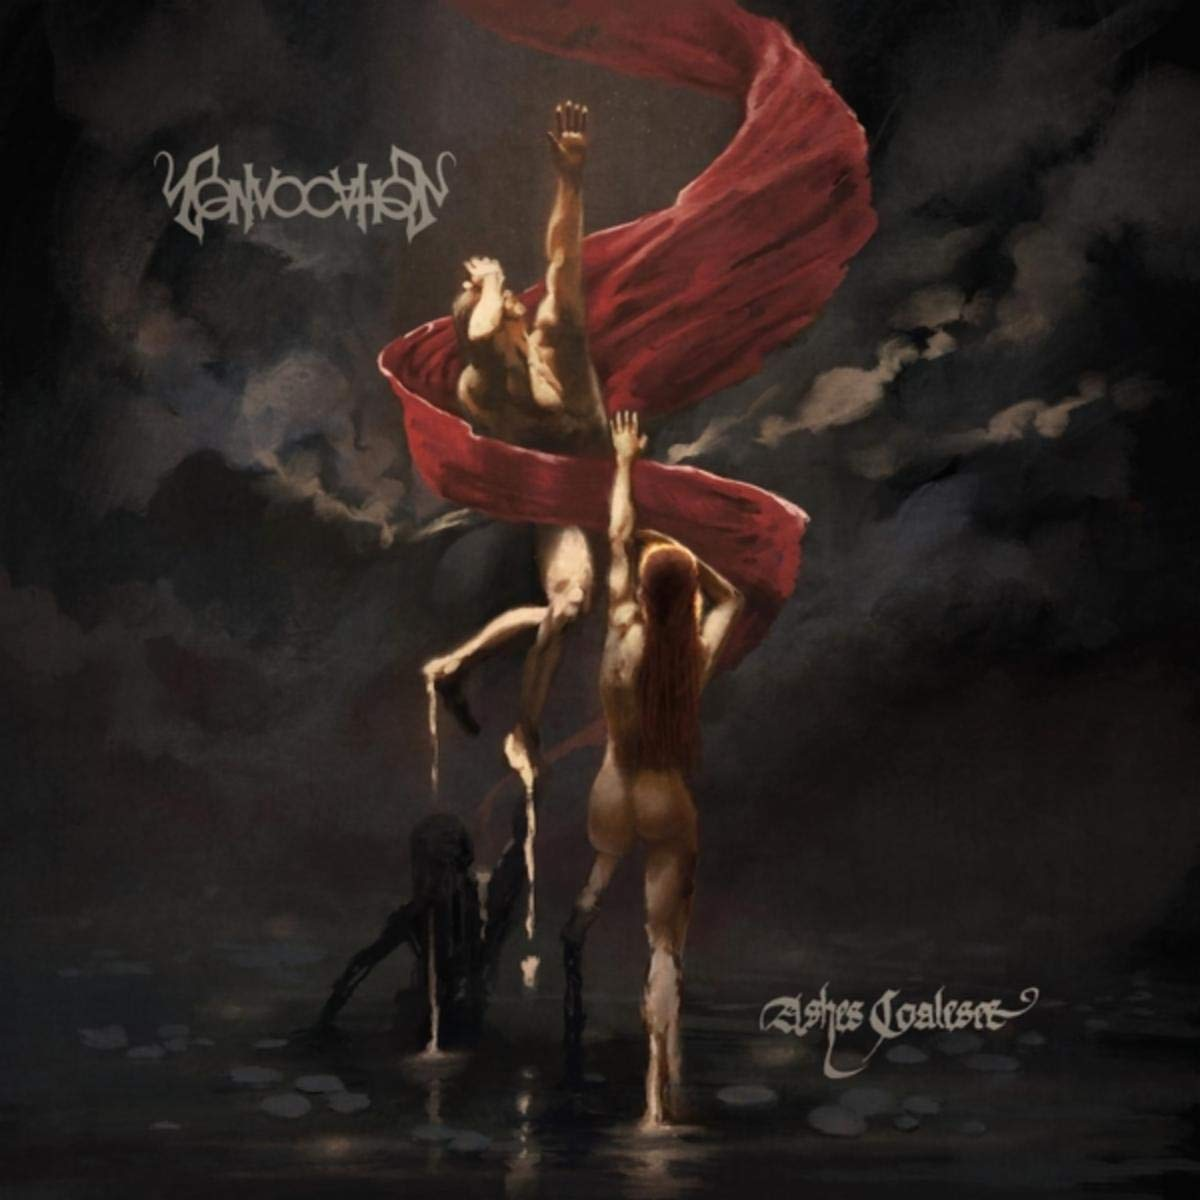 Convocation - Ashes Coalesce (2020) [FLAC] Download